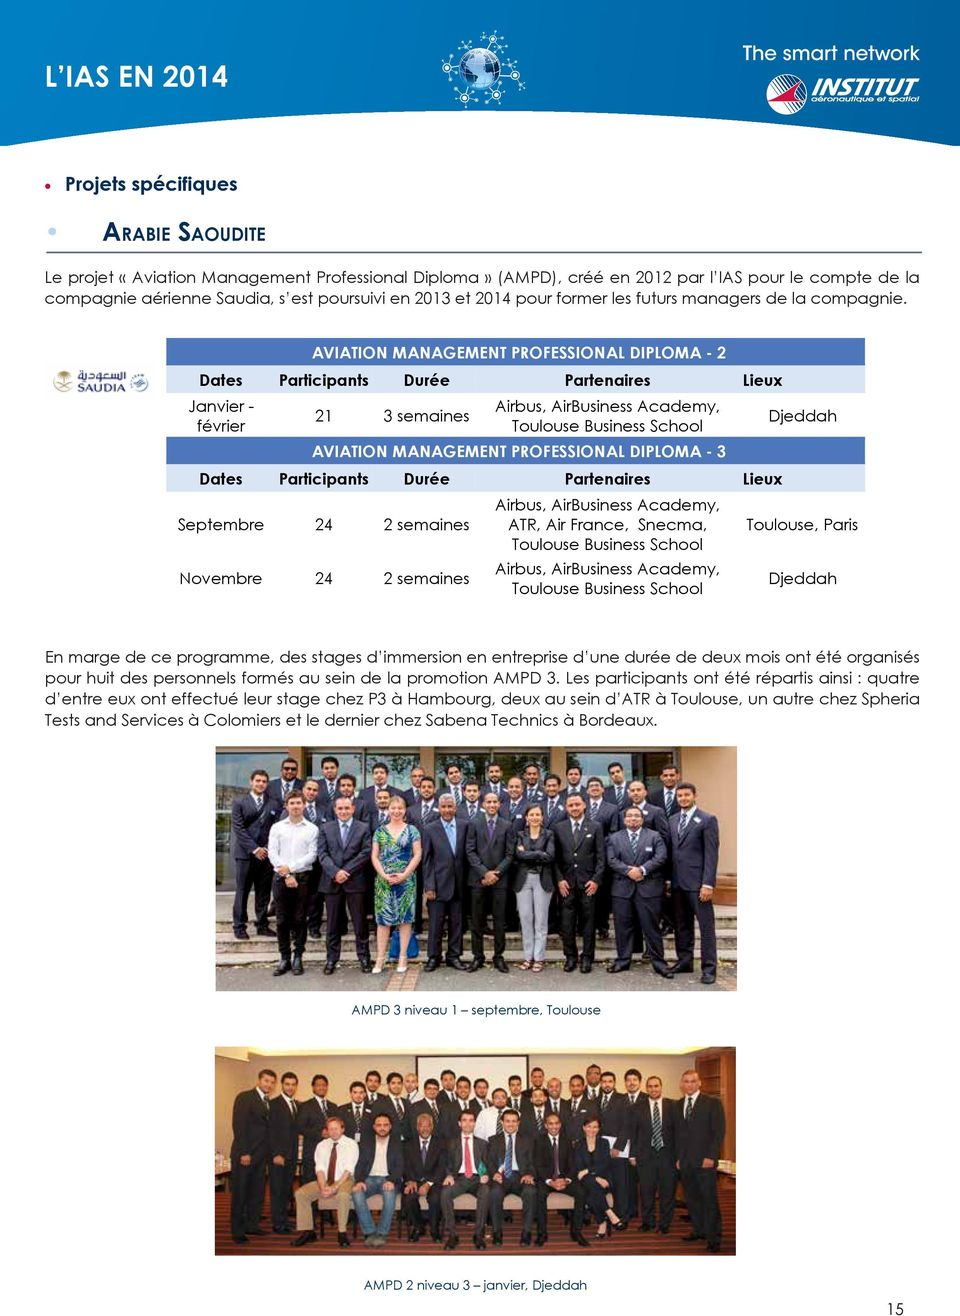 AVIATION MANAGEMENT PROFESSIONAL DIPLOMA 2 Dates Participants Durée Partenaires Lieux Janvier février Airbus, AirBusiness Academy, 21 3 semaines Toulouse Business School AVIATION MANAGEMENT